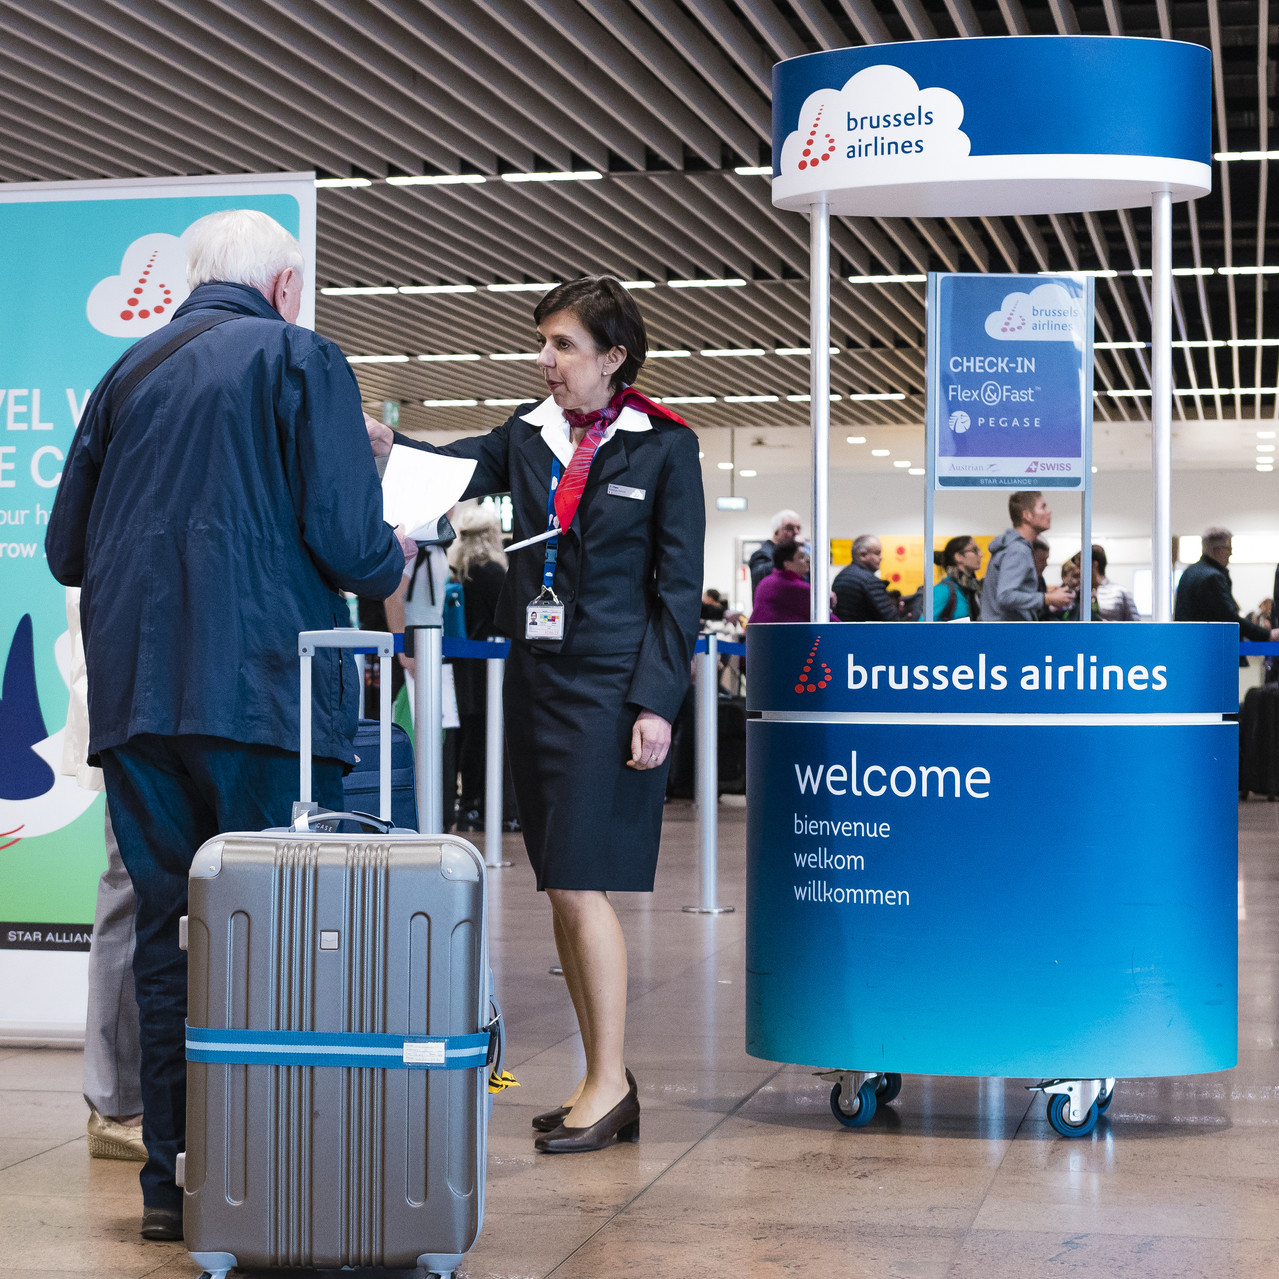 003_Check In_Brussels Airlines